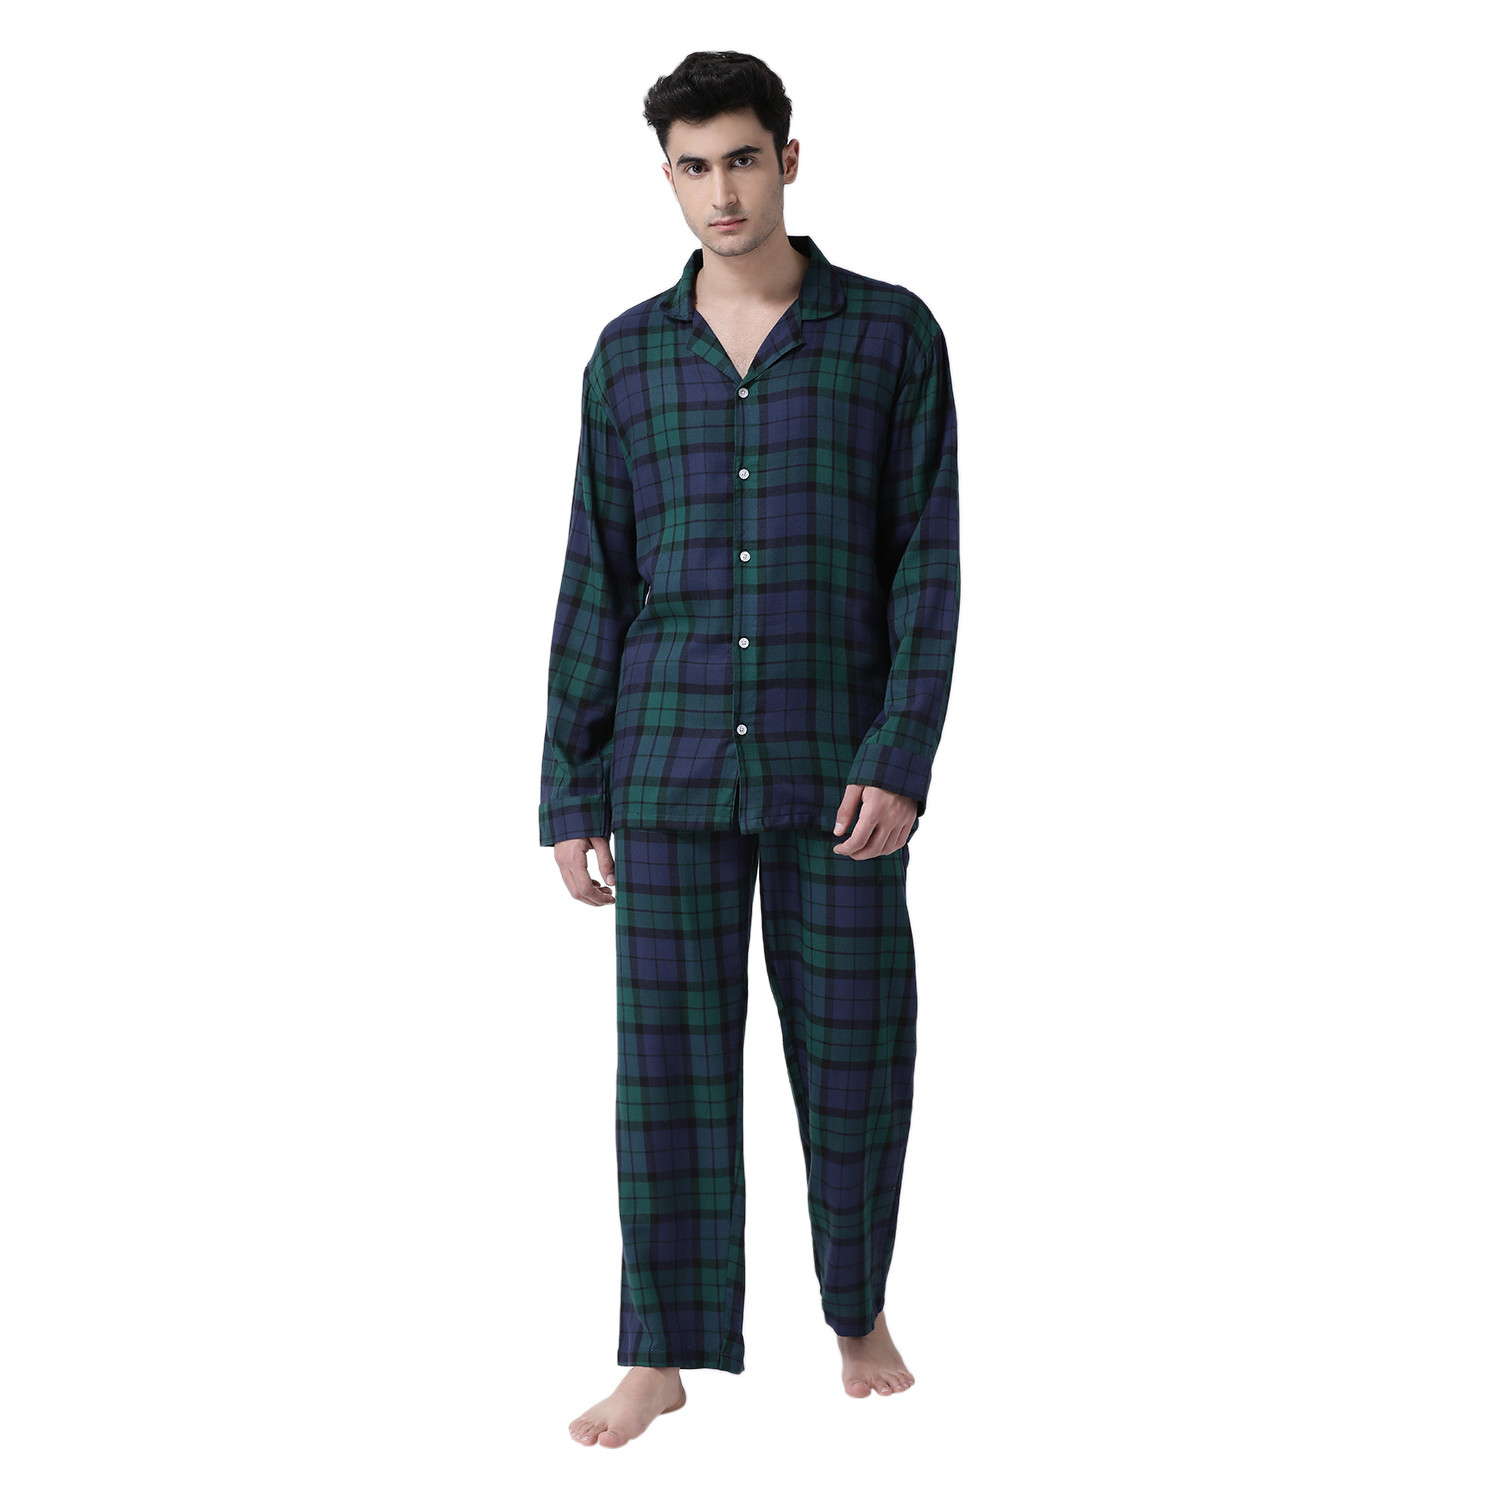 Plaid Lad Men's Rayon-Cotton Night Suit Set